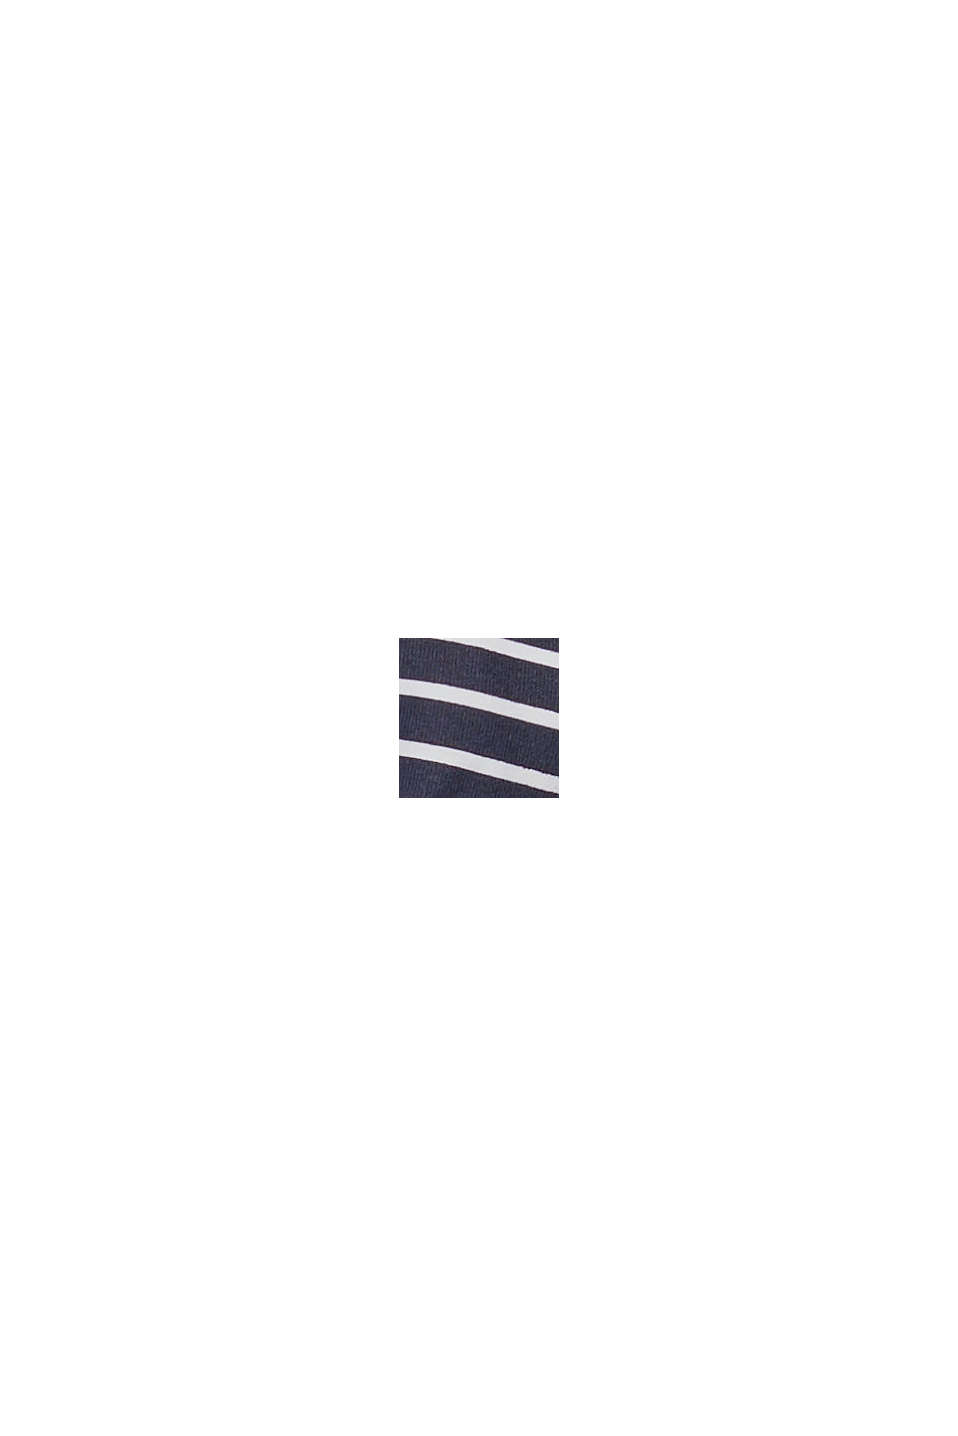 Recycled: Unpadded underwire top with stripes, NAVY, swatch